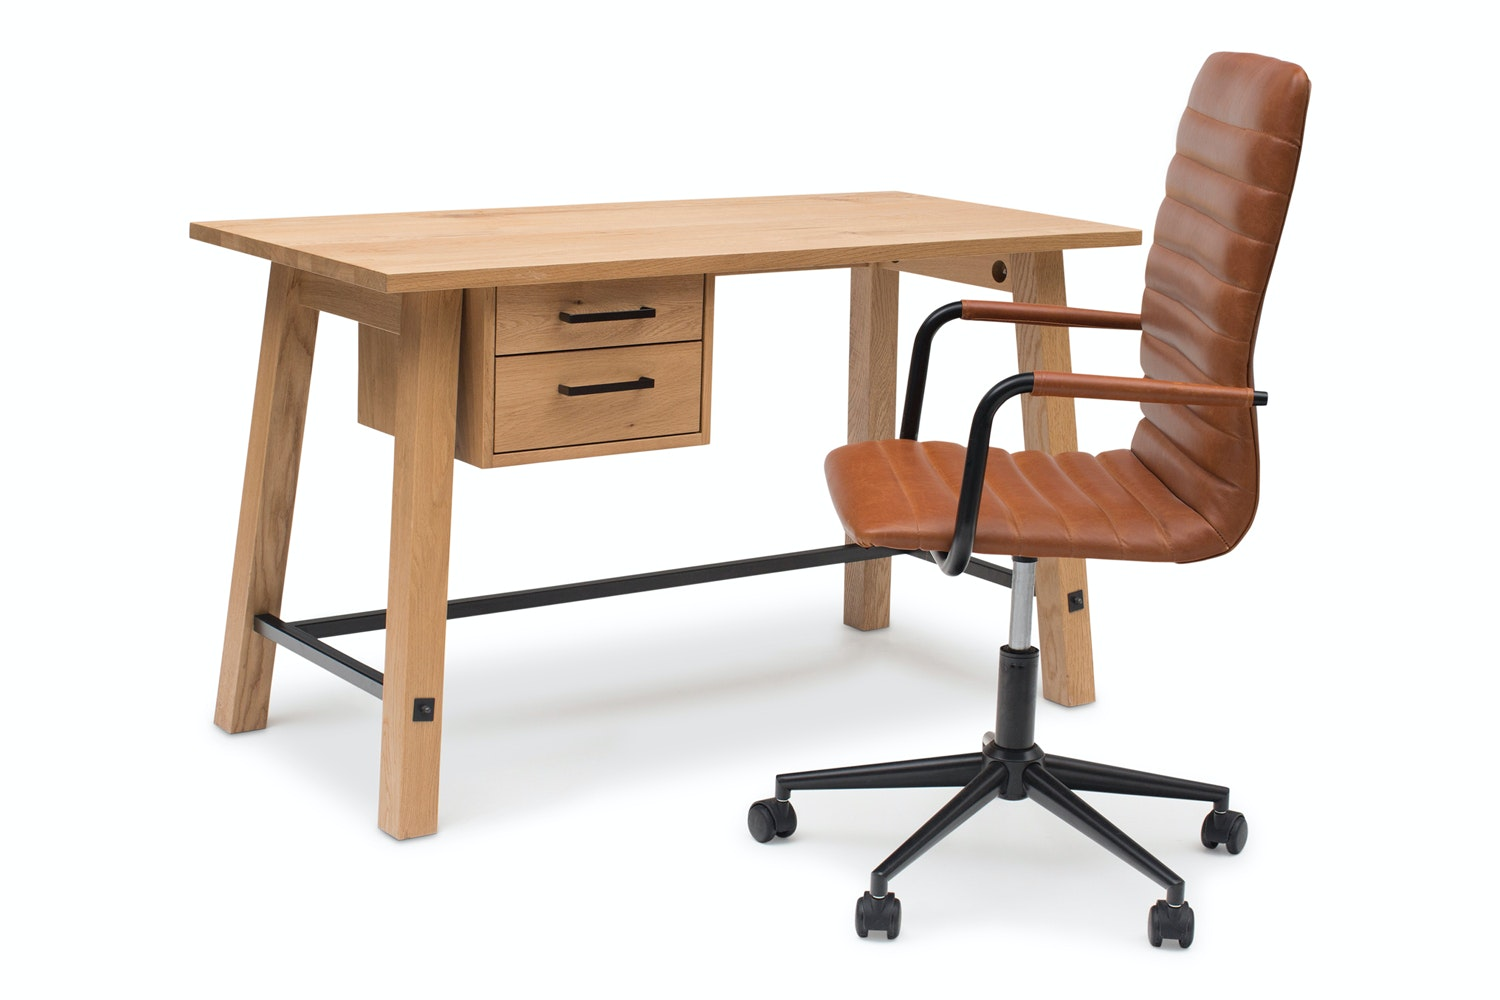 Stockholm Office Set With Desk and Chair